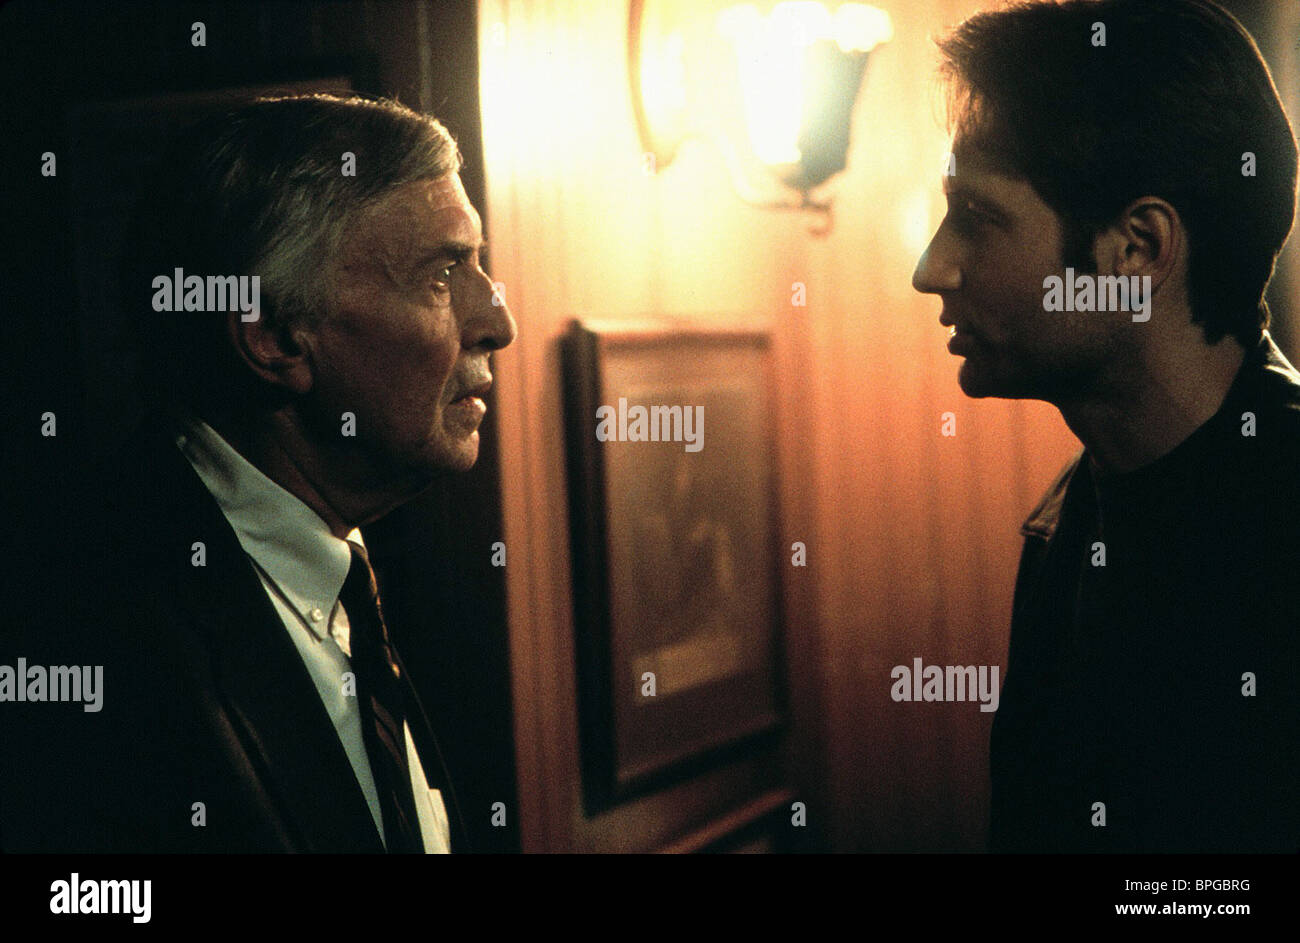 MARTIN LANDAU, DAVID DUCHOVNY, THE X FILES, 1998 - Stock Image